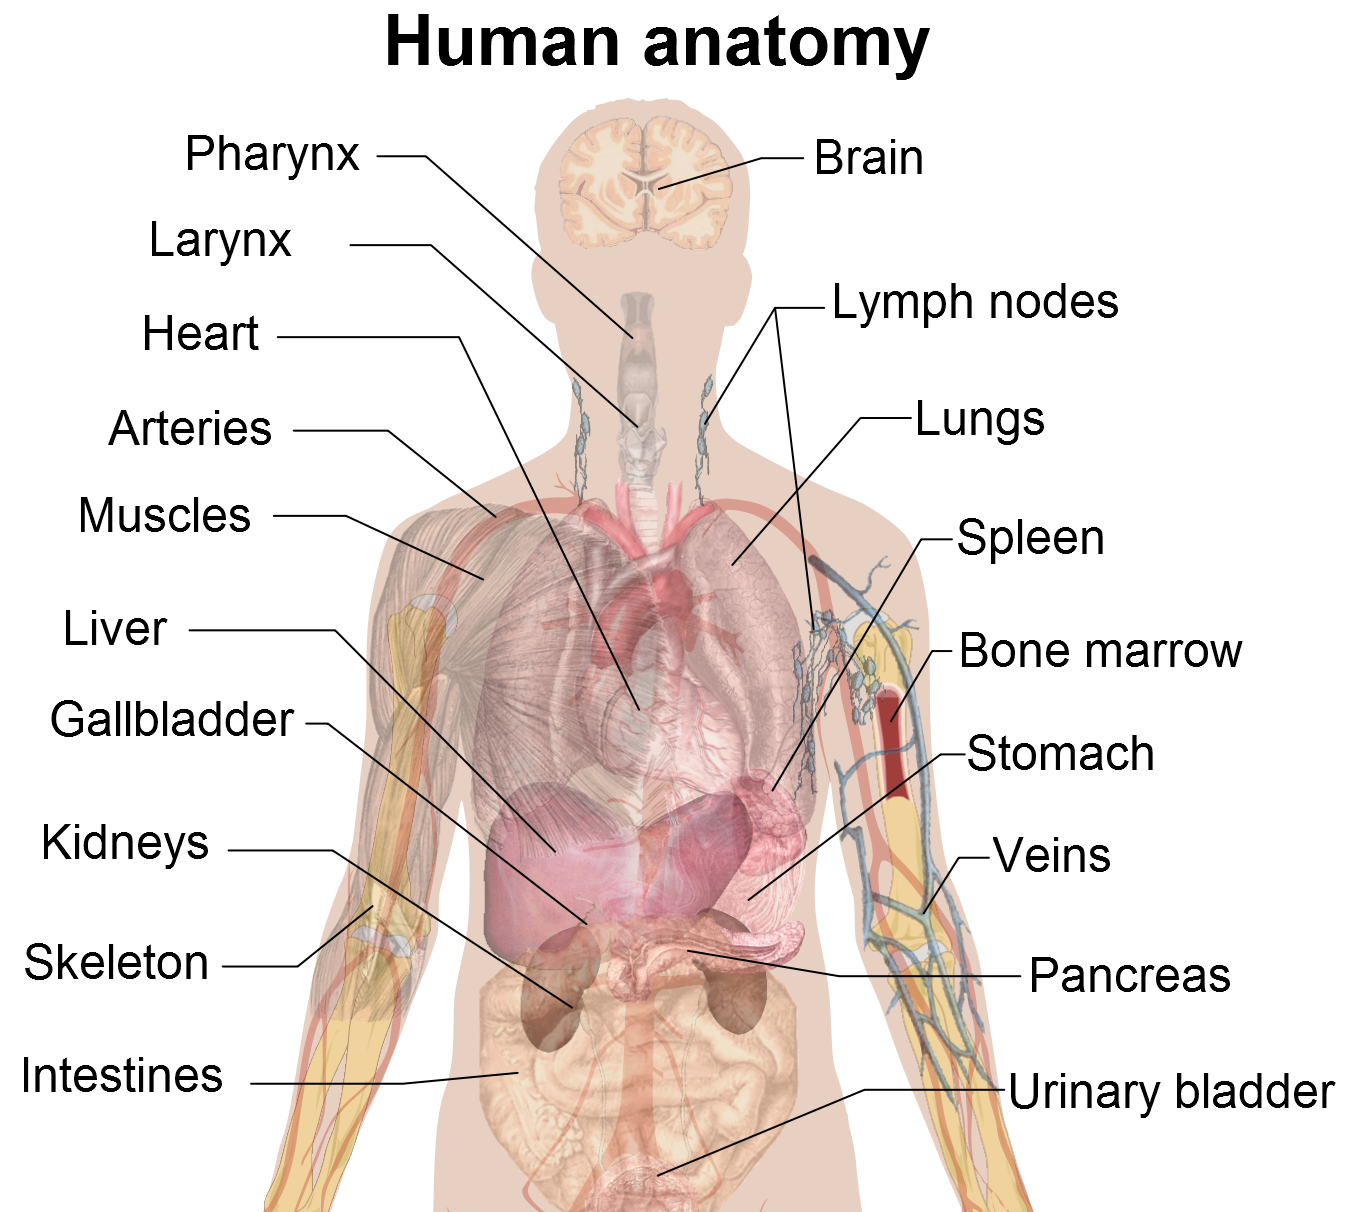 Know Your Body Parts Human Anatomy Photo And Names